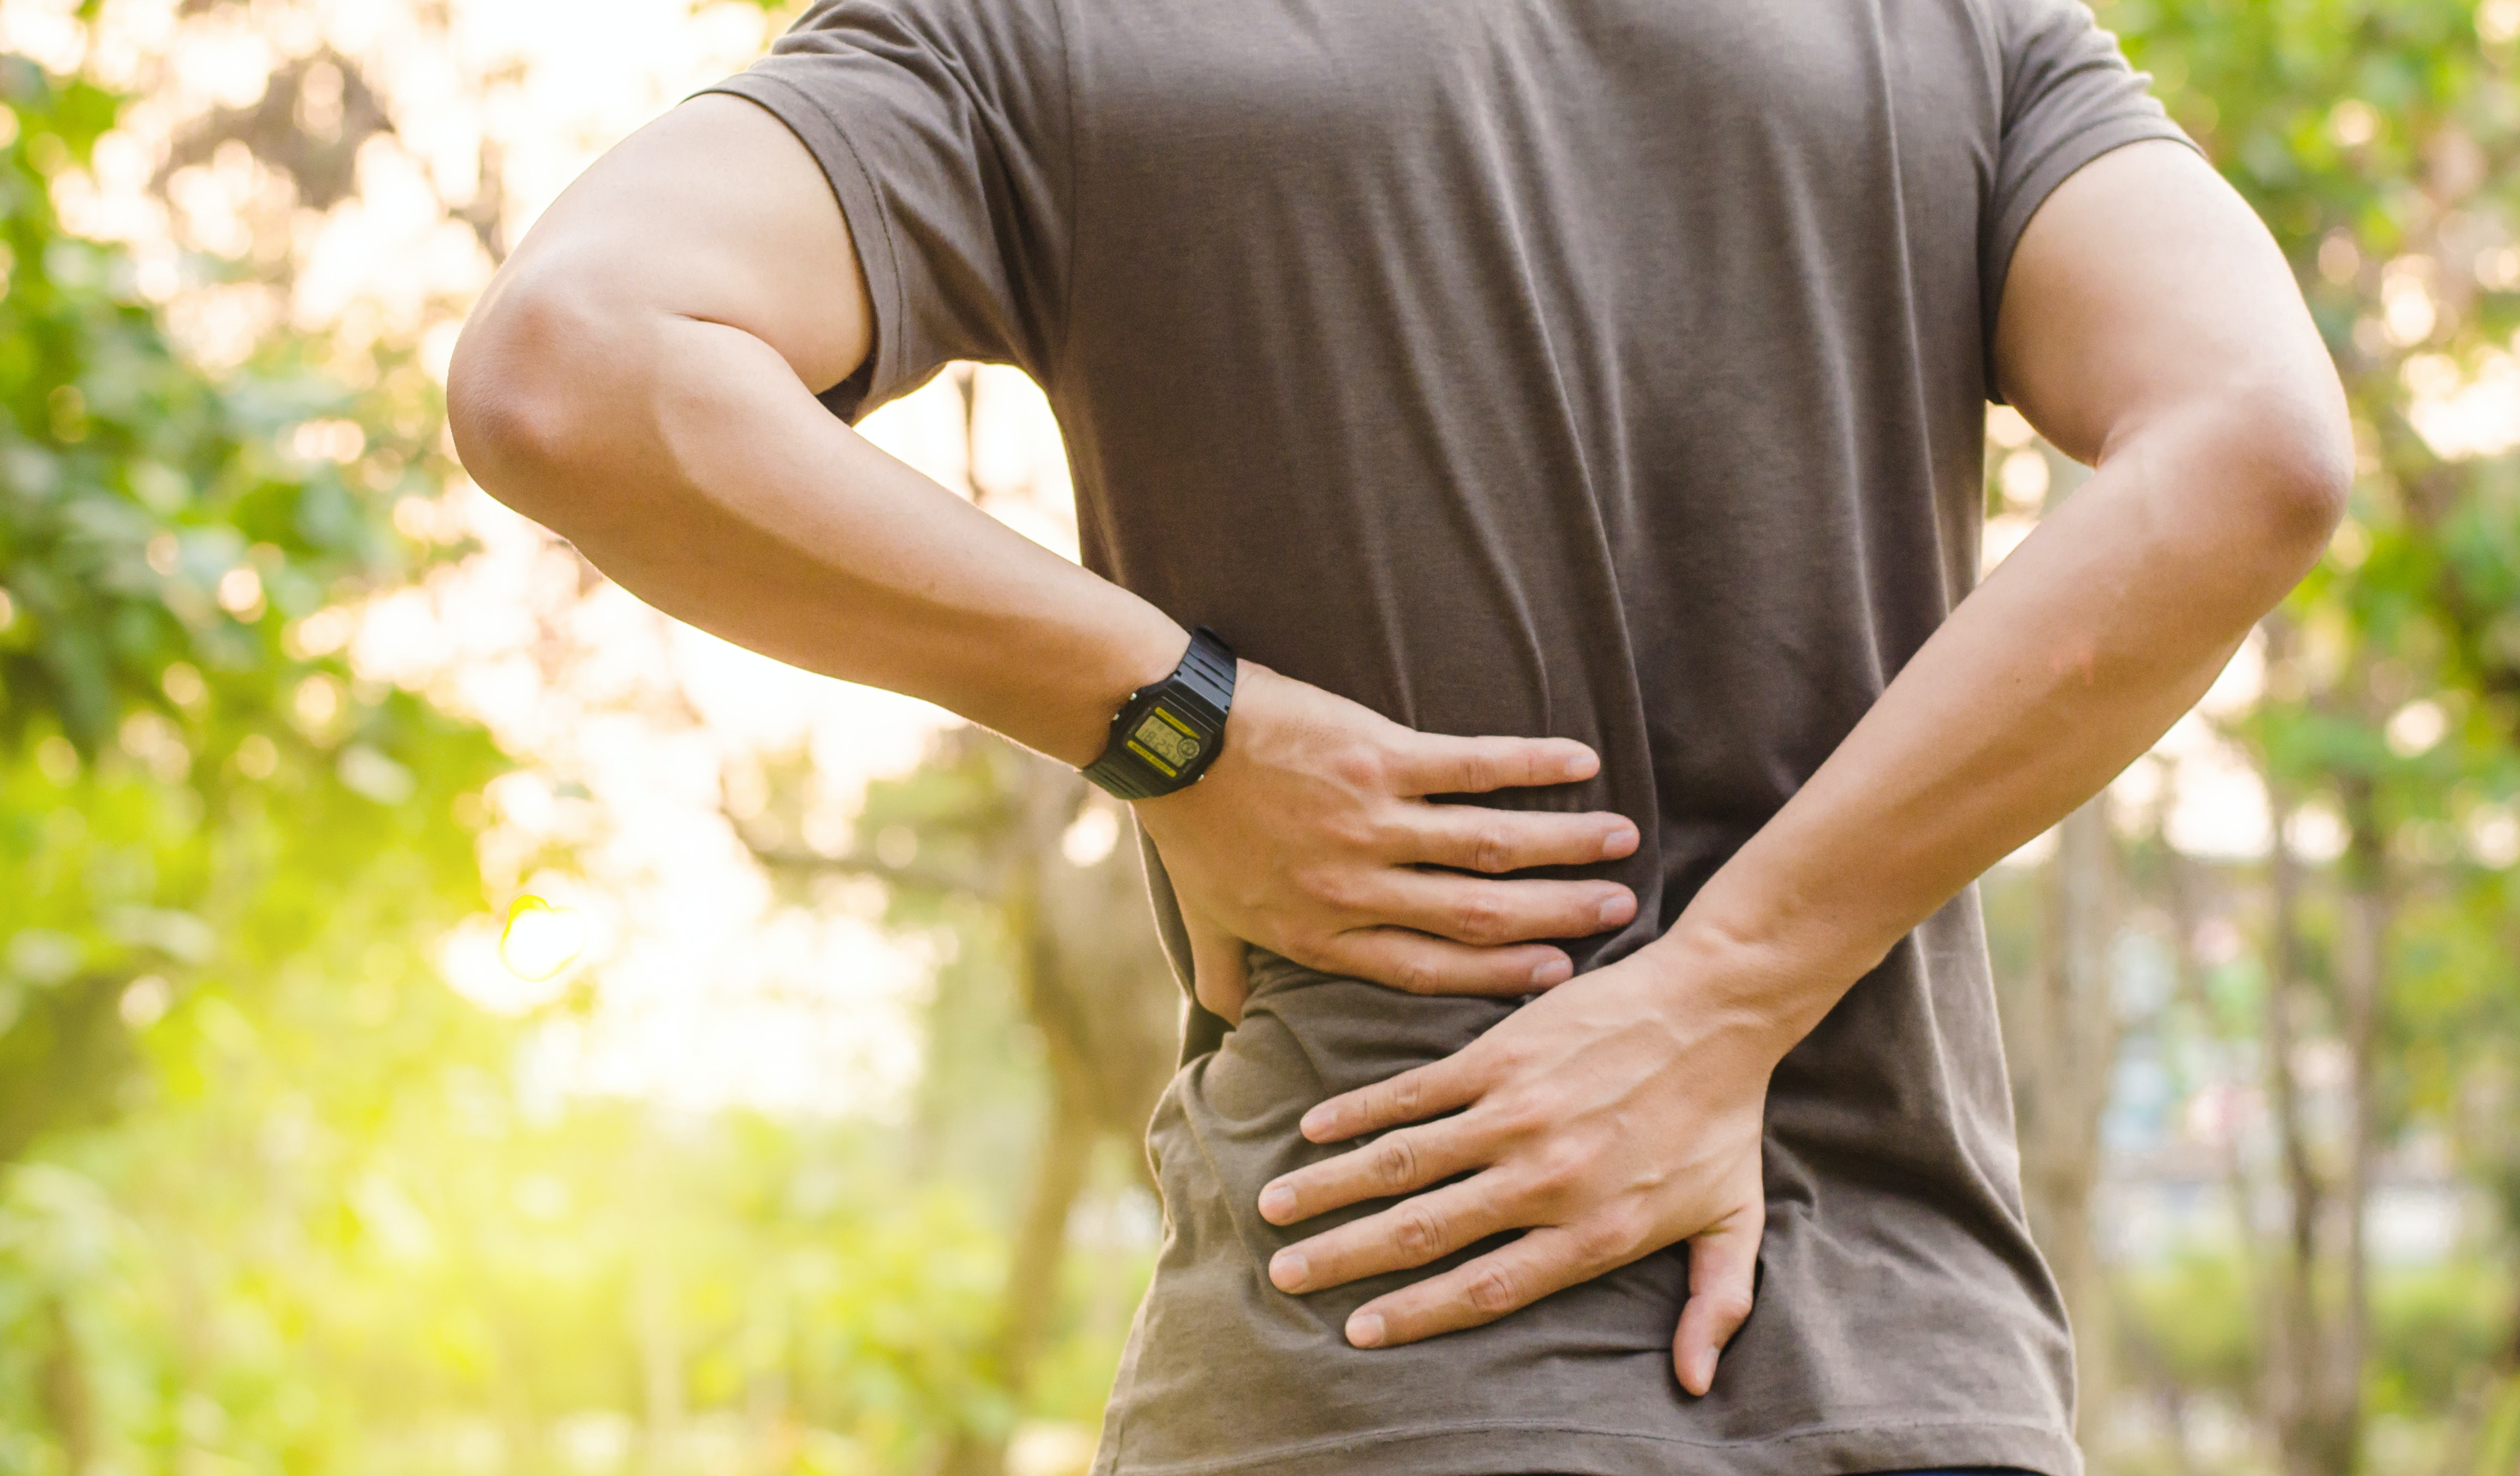 An image depicting a person suffering from lower back pain symptoms